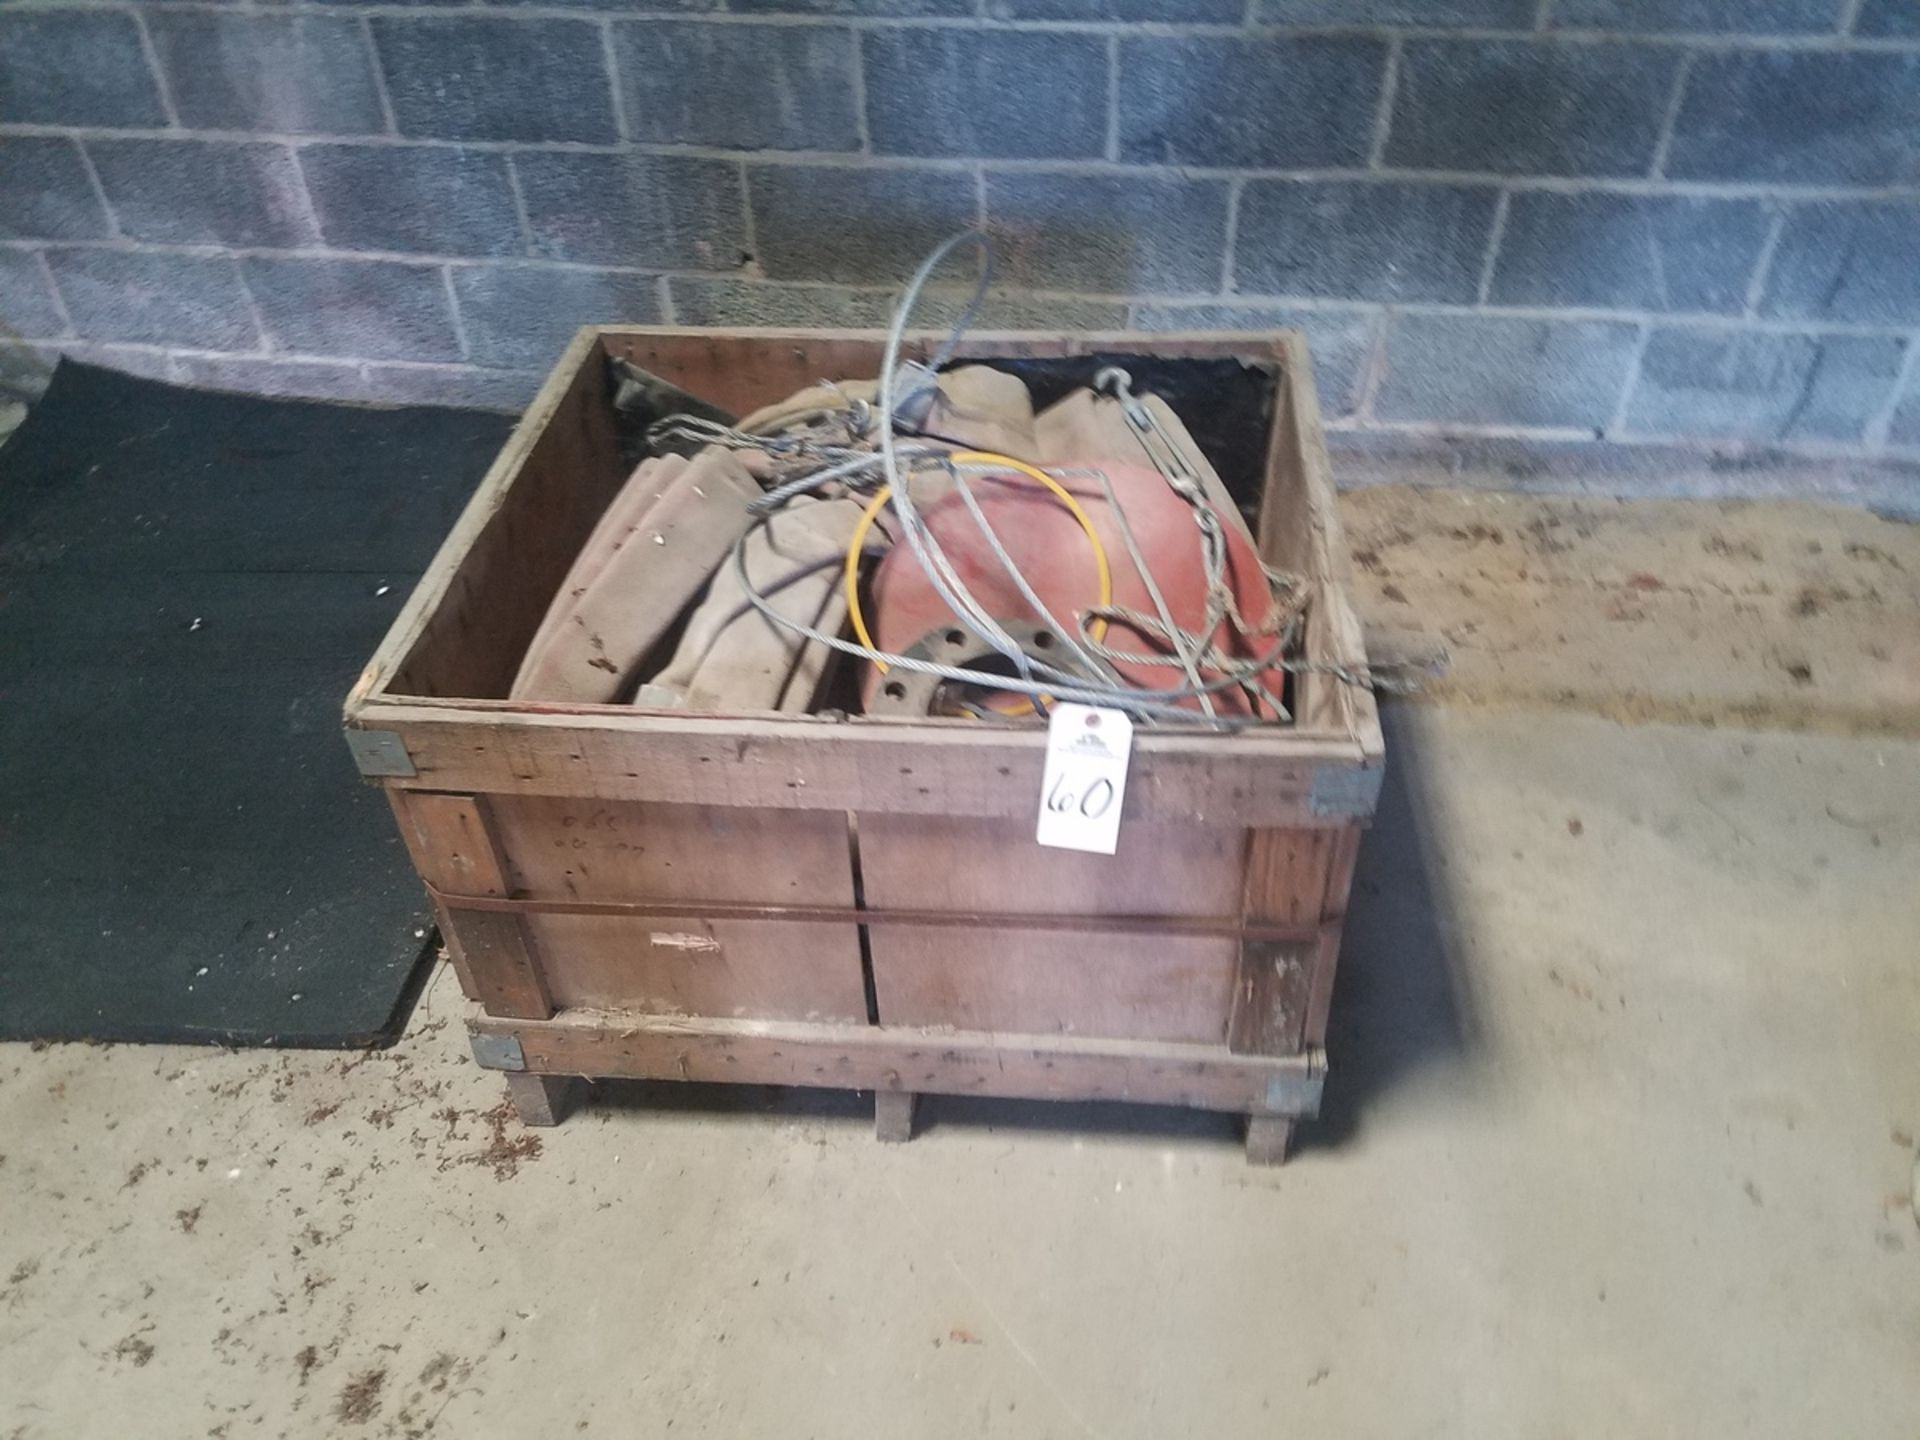 Lot of Discharge Hoses   Rig Fee: $25